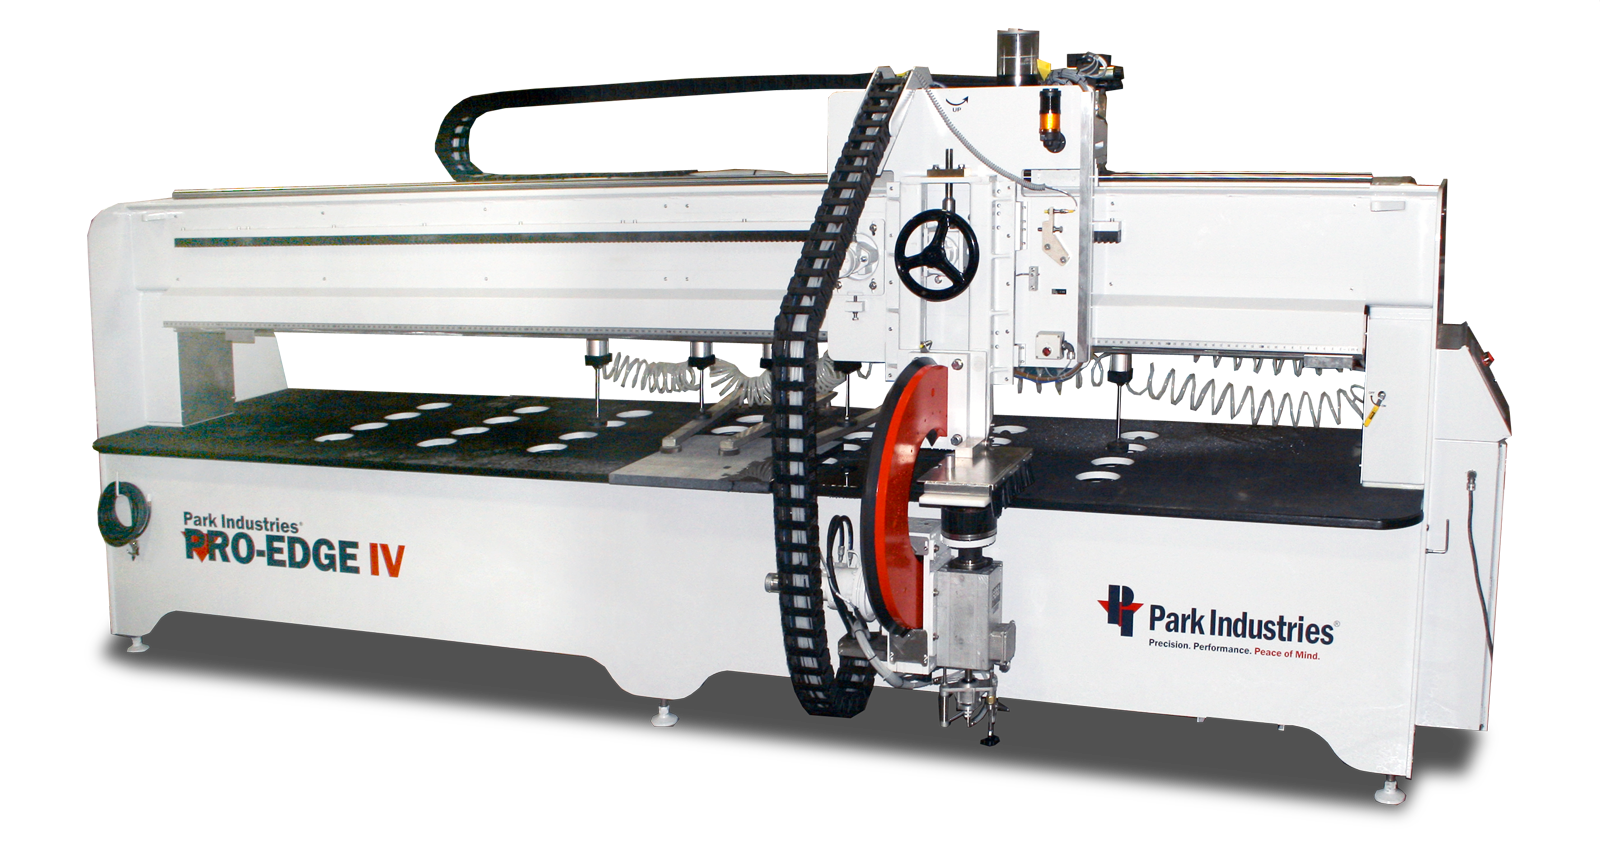 Pro-Edge IV Automatic Stone Edge Shaper and Polisher from Park Industries